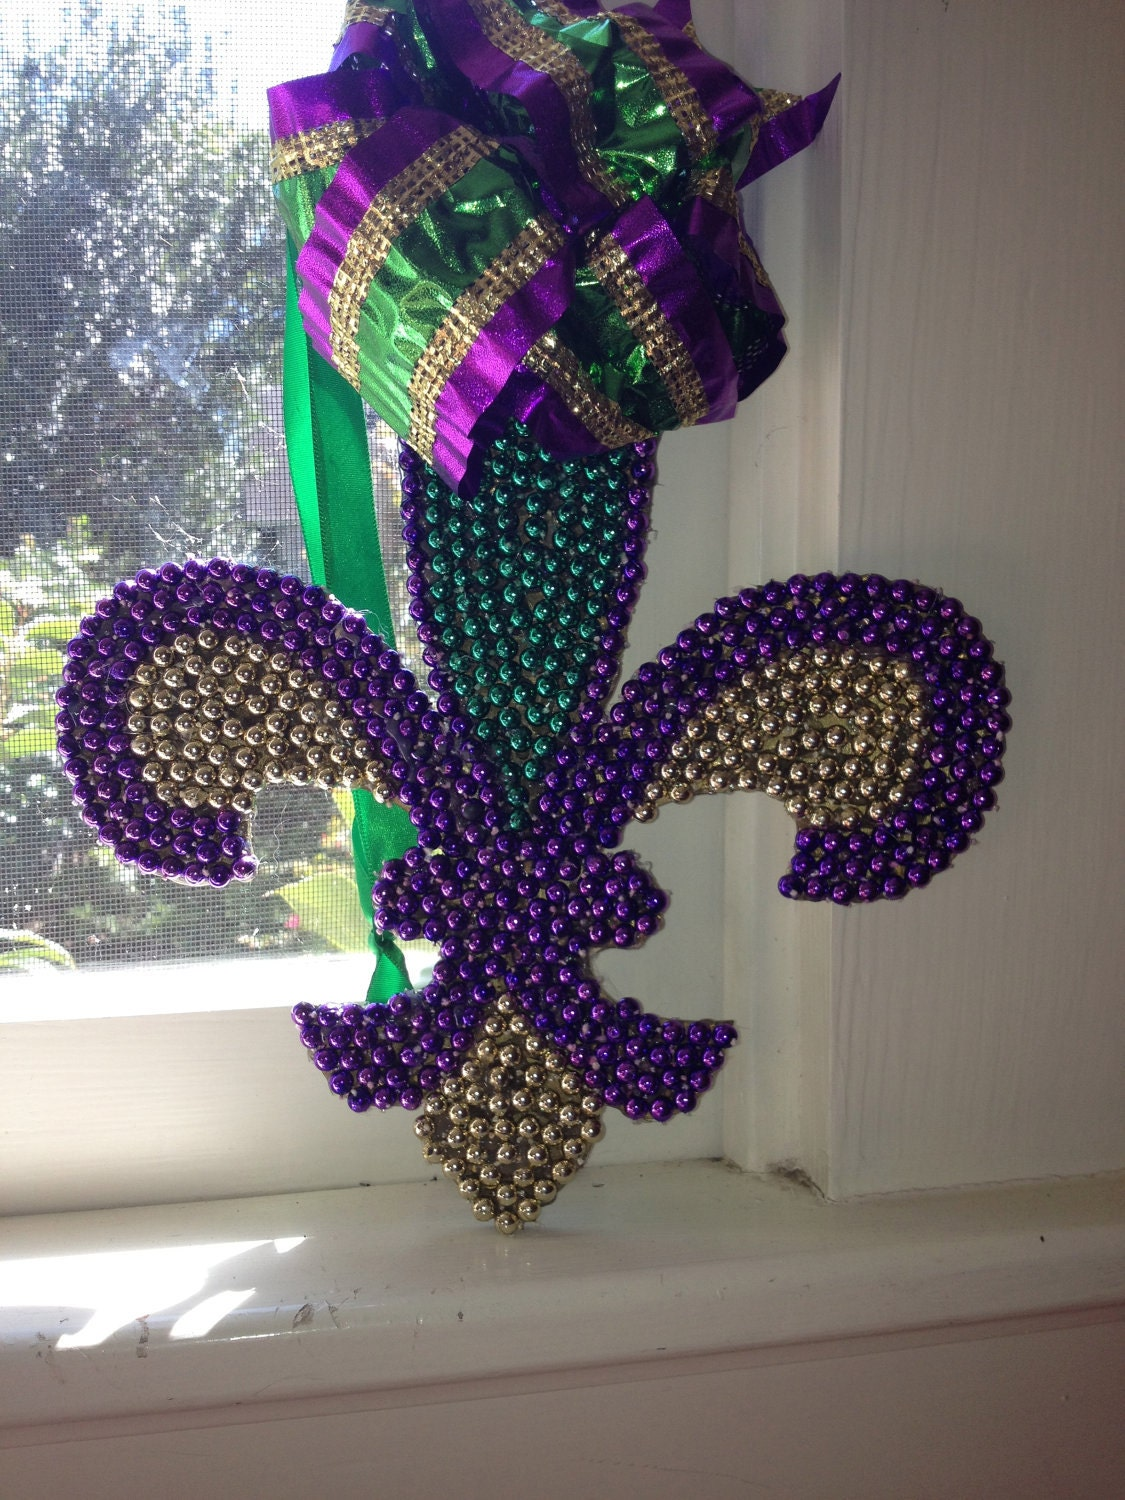 Small mardi gras fleur de lis for Beads for craft projects